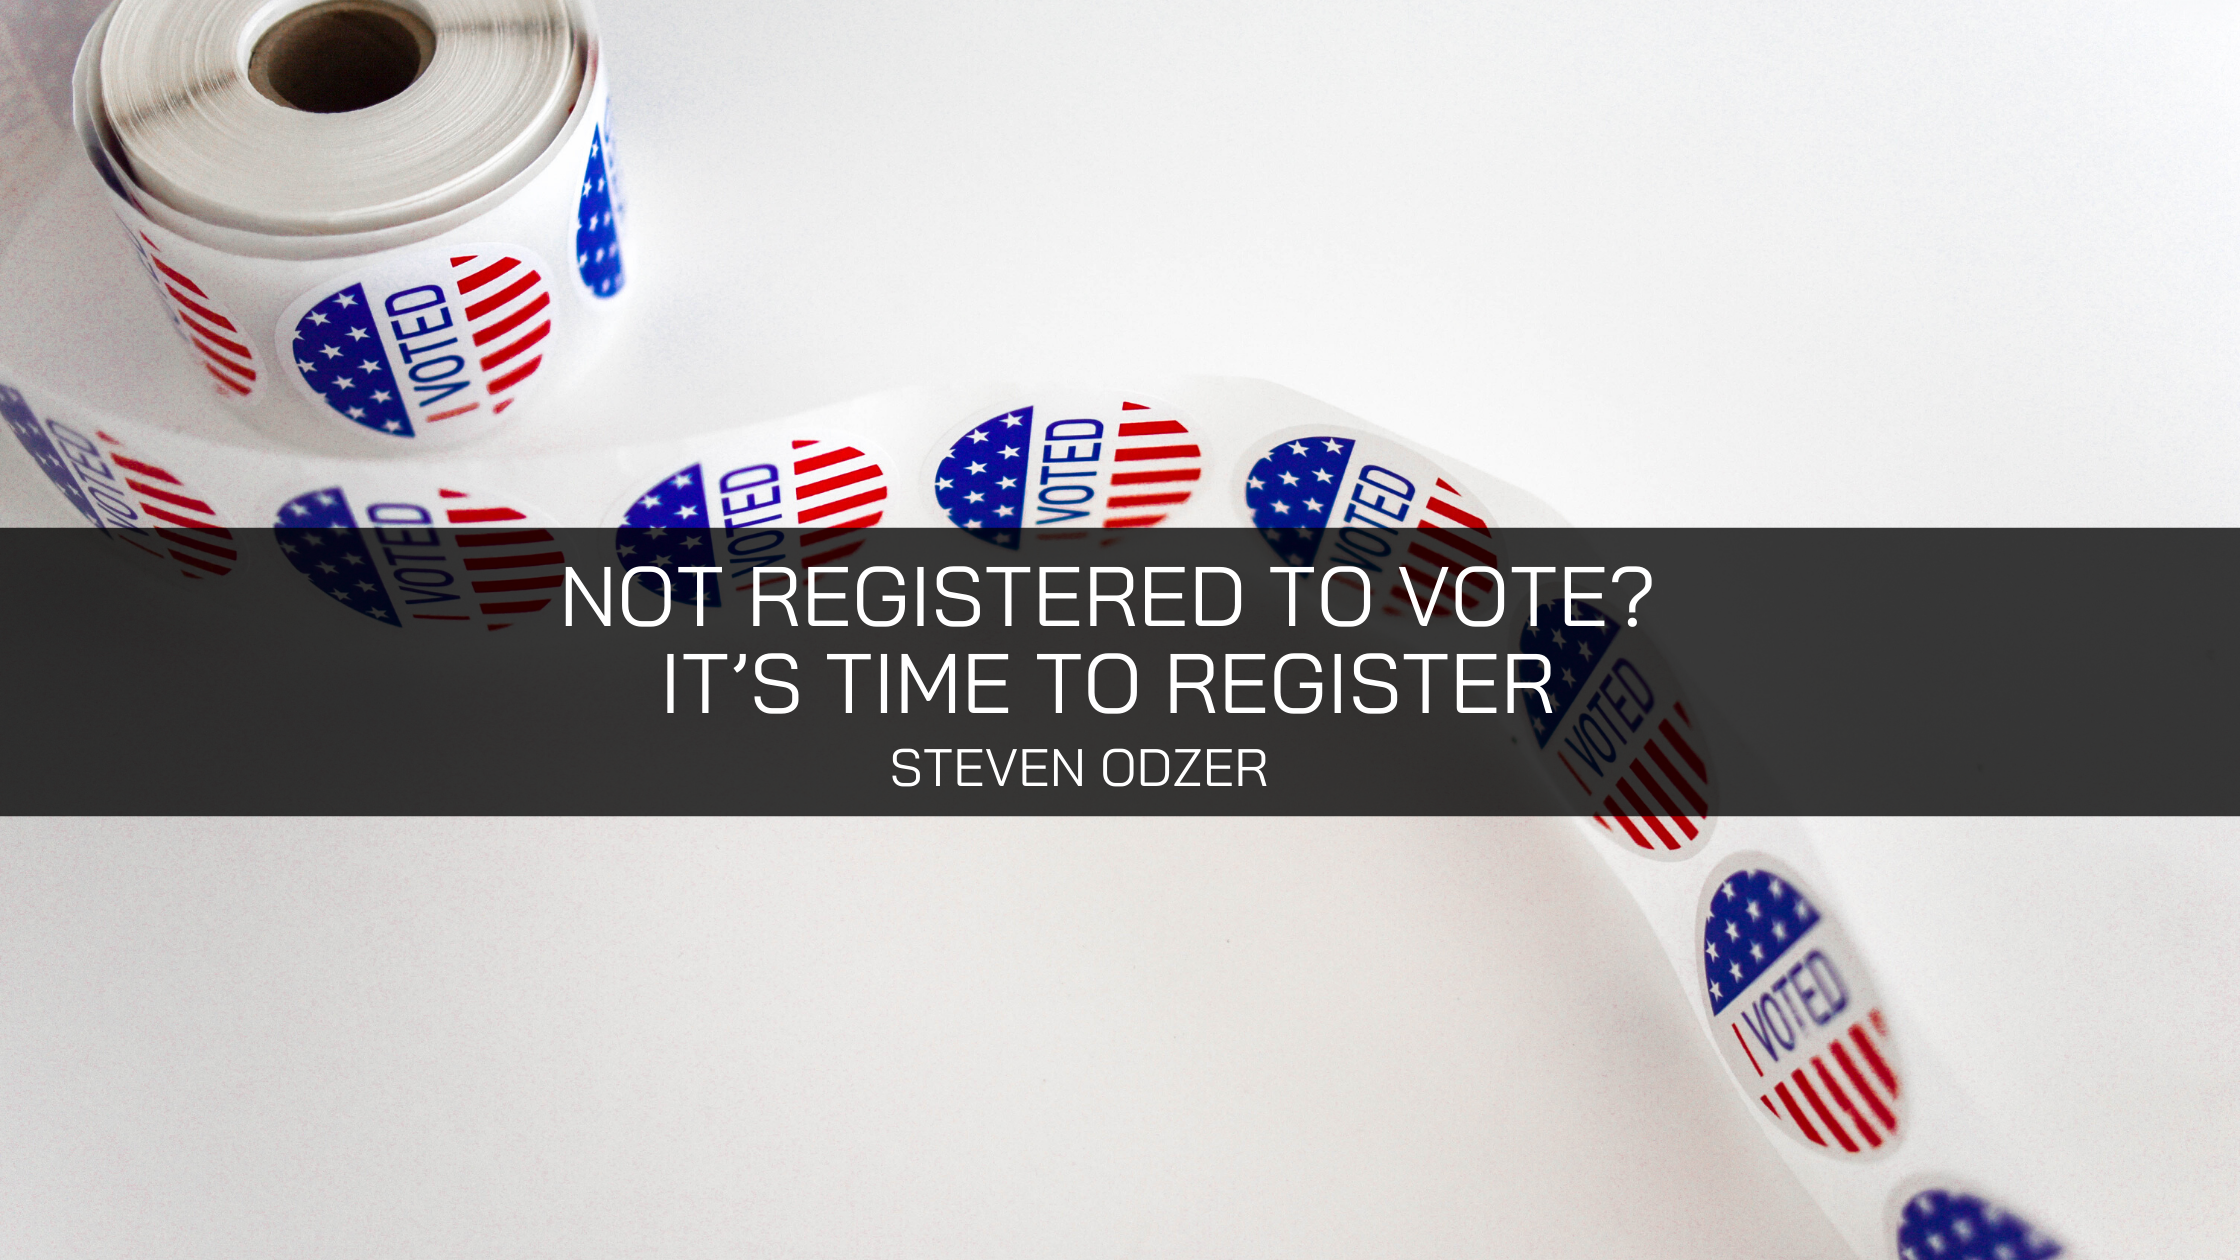 Not Registered to Vote? Steven Odzer Shares Why It's Time to Register to Vote